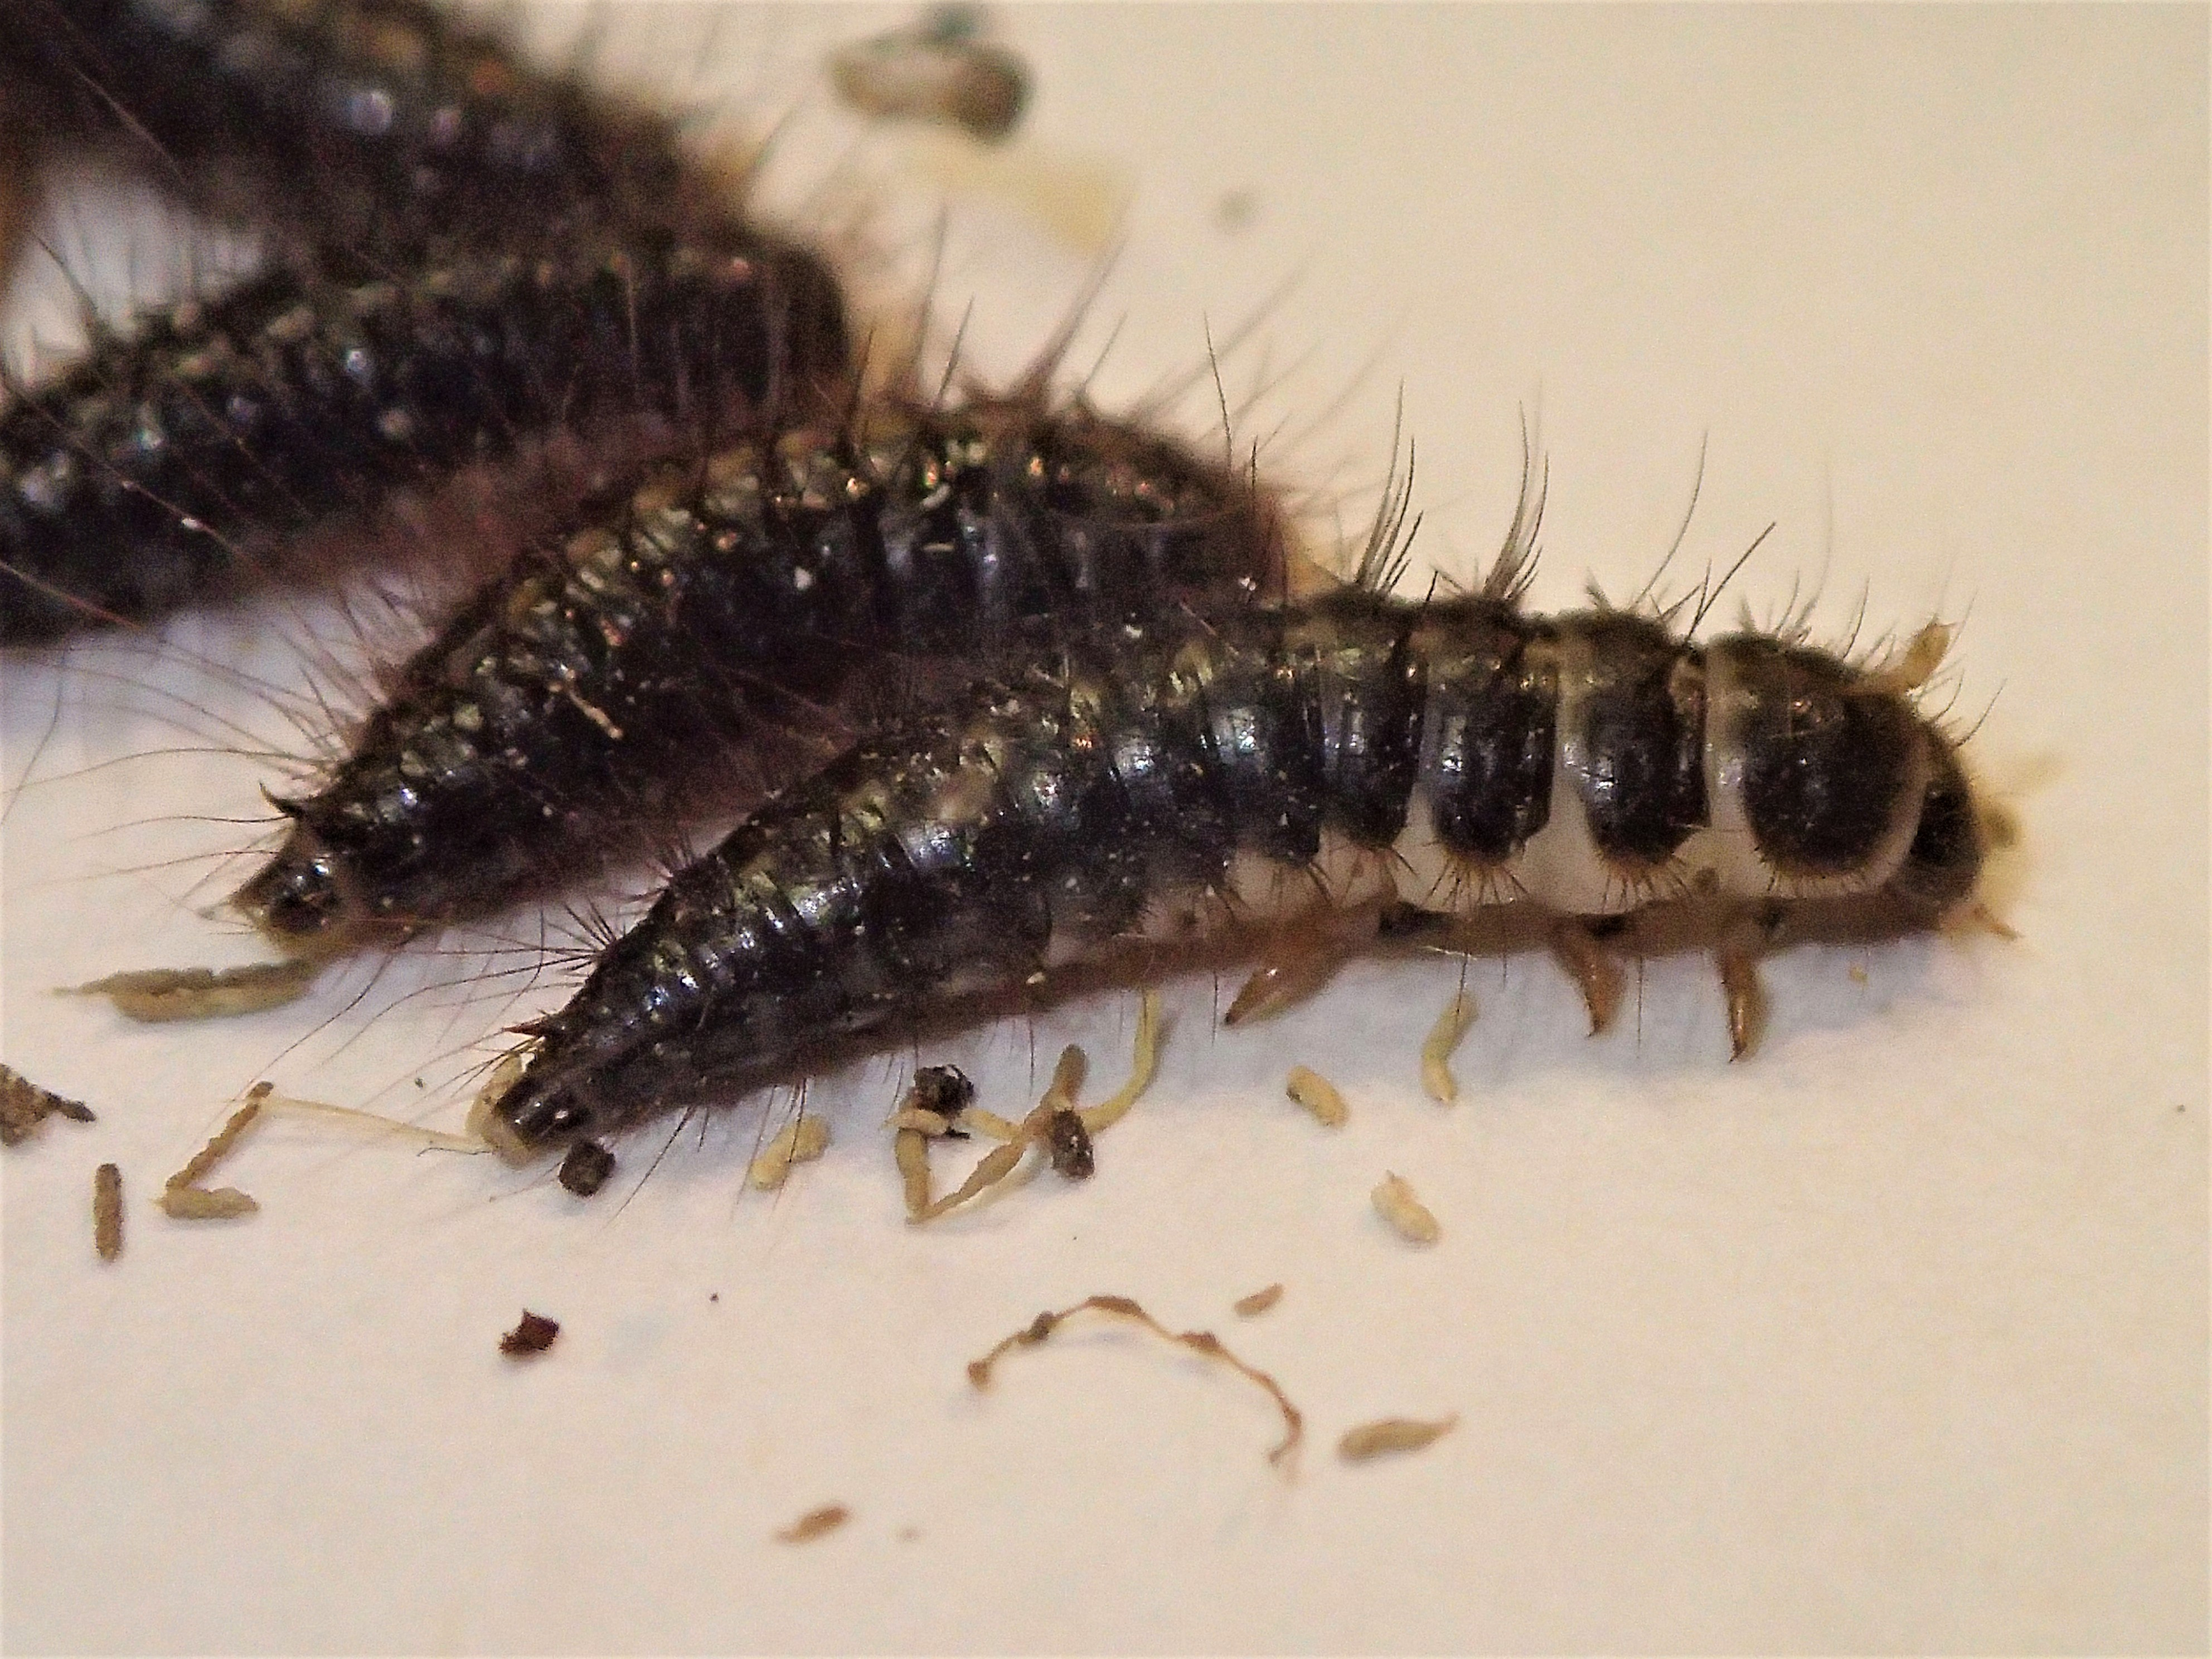 Nuisance and household pests-Carpet beetle and hide beetle